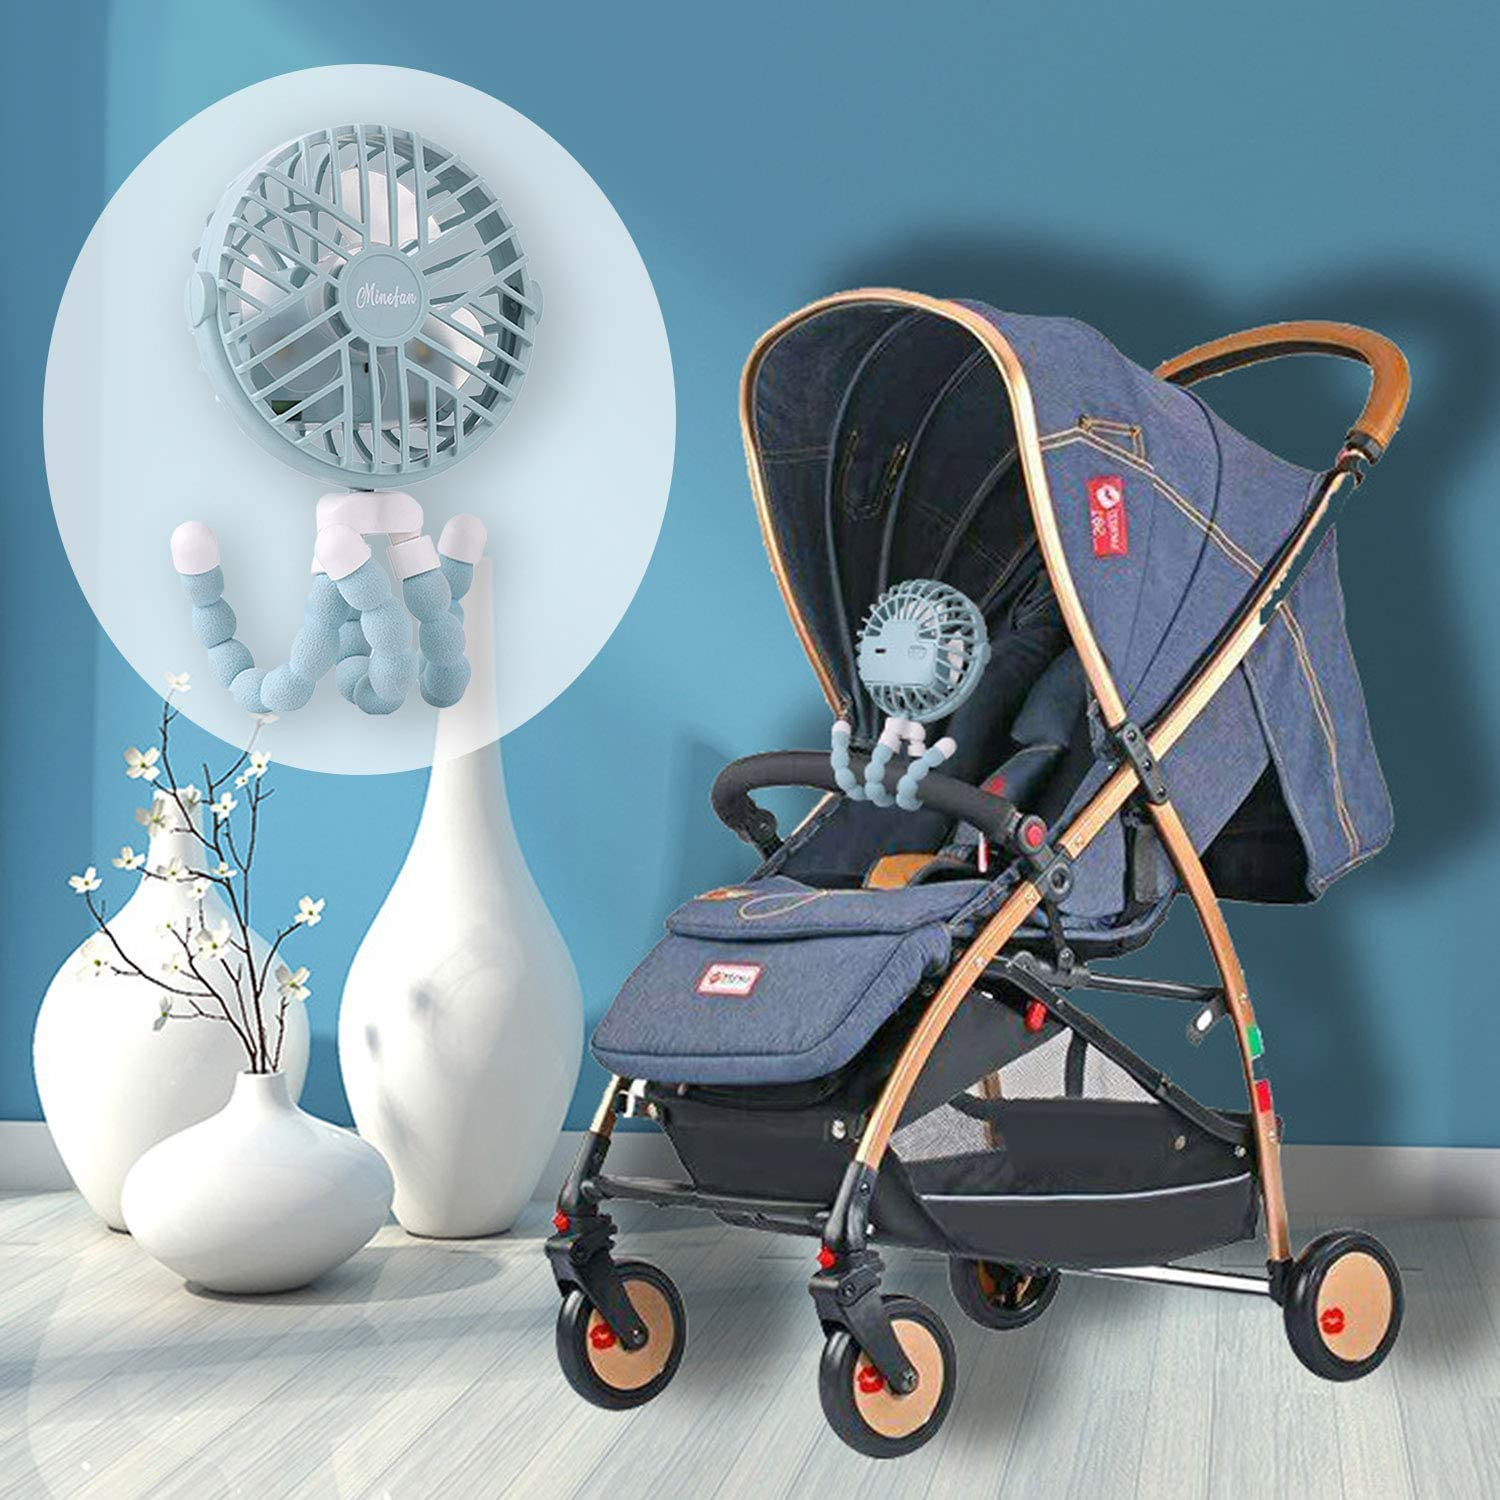 Mini Handheld Stroller Fan USB Personal Portable 3 Speeds Clip On Fan with Flexible Tripod for Car Seat Crib Bike Camping Travel Office Blue